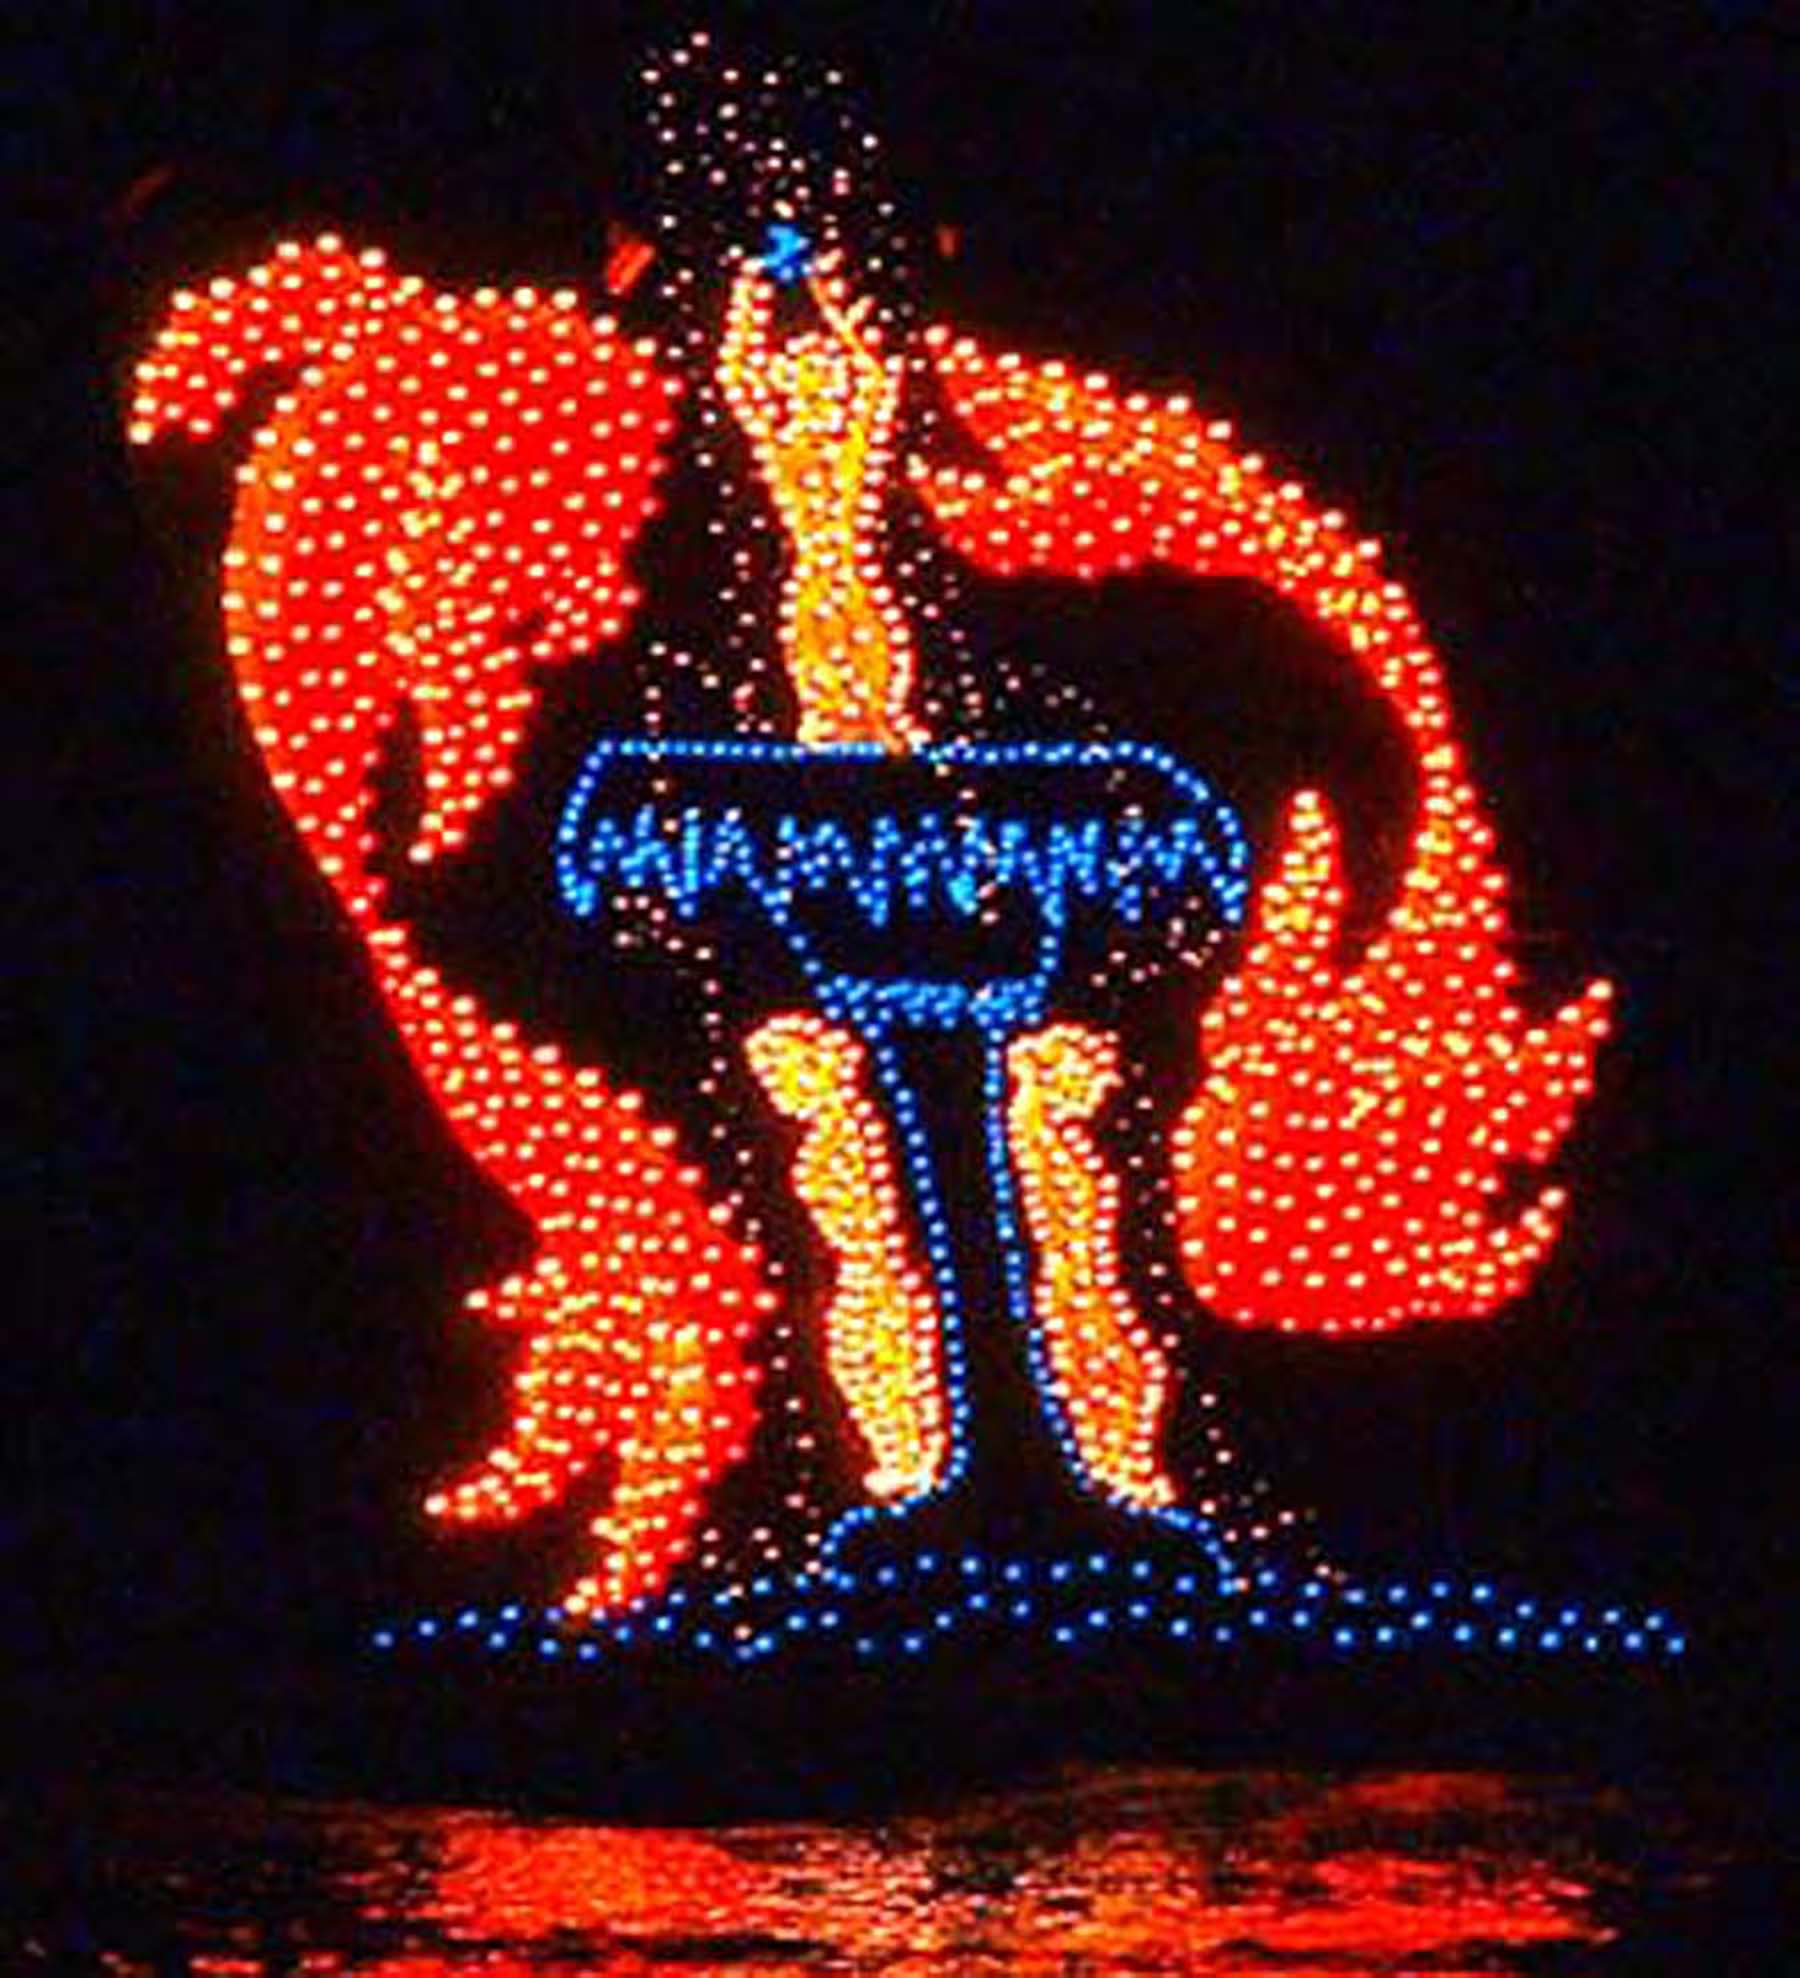 https://alabama-travel.s3.amazonaws.com/partners-uploads/photo/image/5f284db03ef2650008ed8906/COTR Night Parade - fountain float.jpg